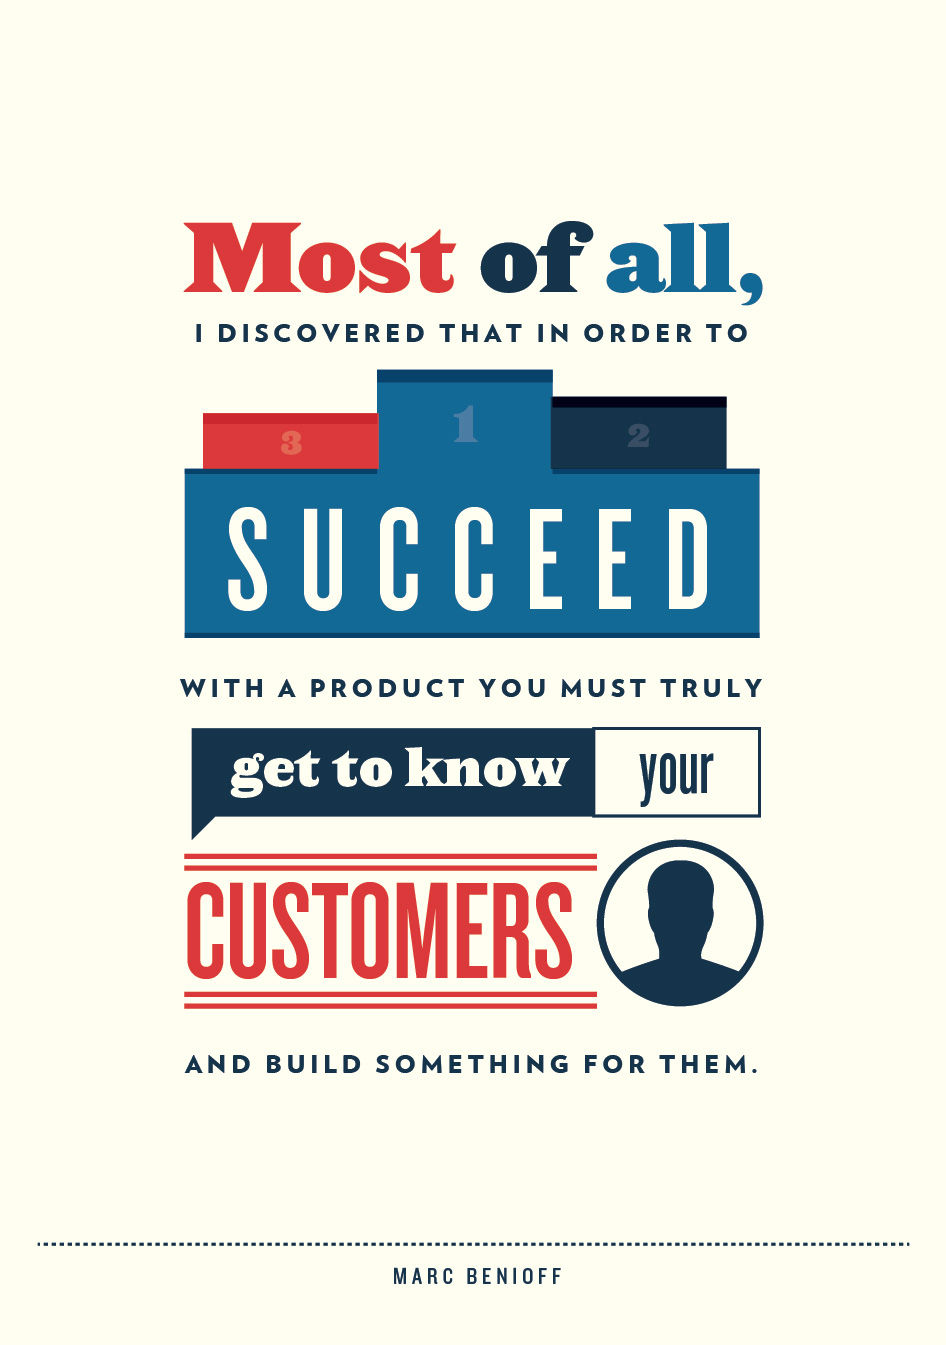 4 Quick Tips And 22 Quotes To Make You A Better Salesperson